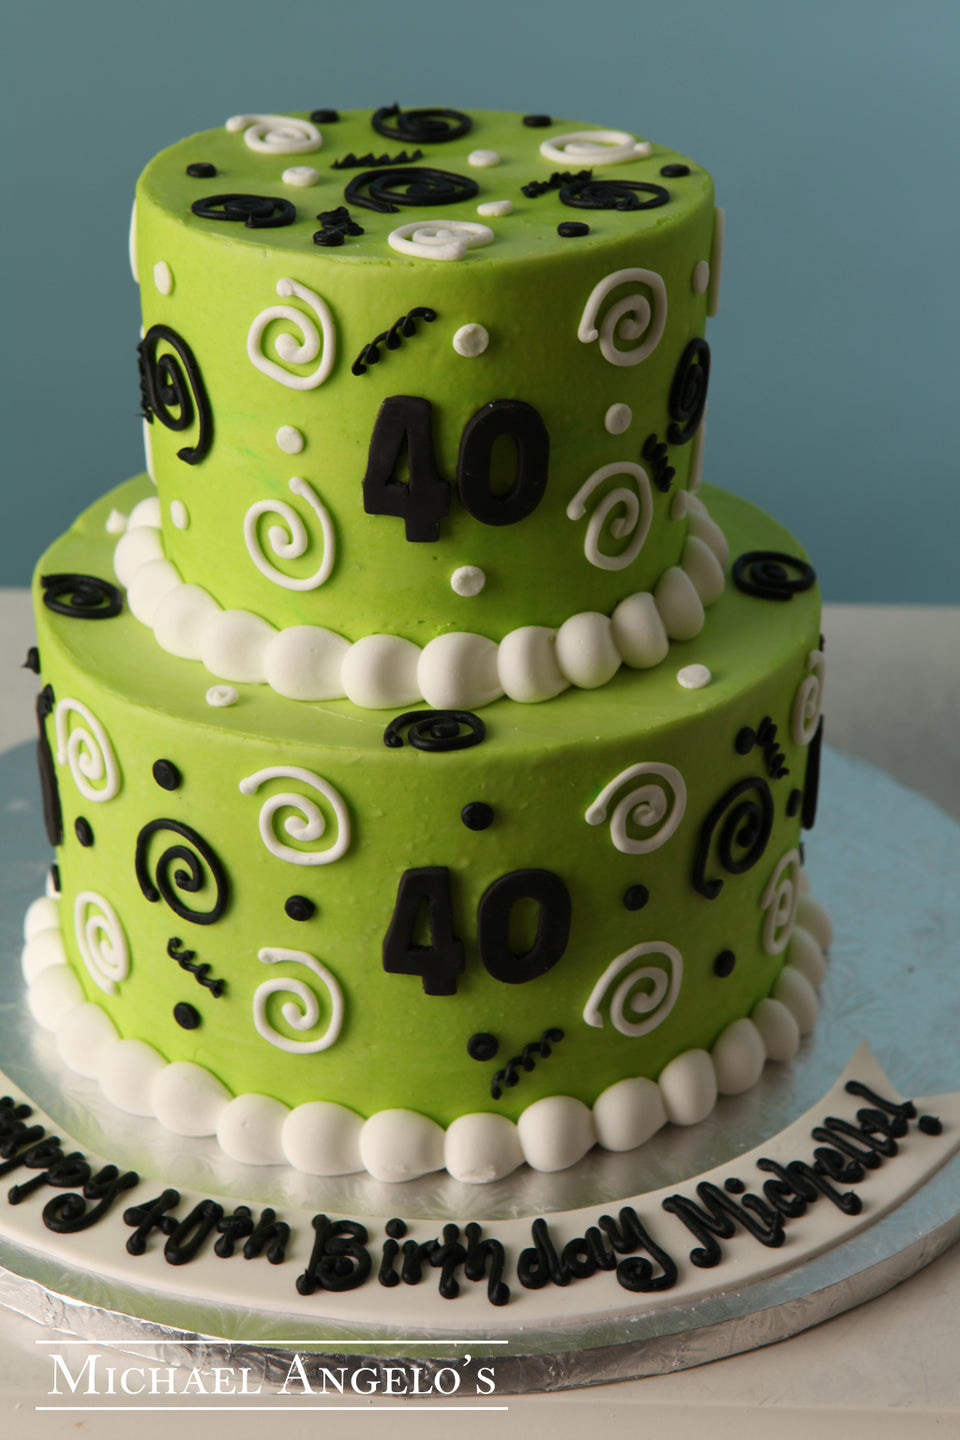 Lime Green with Swirls #27Swirls